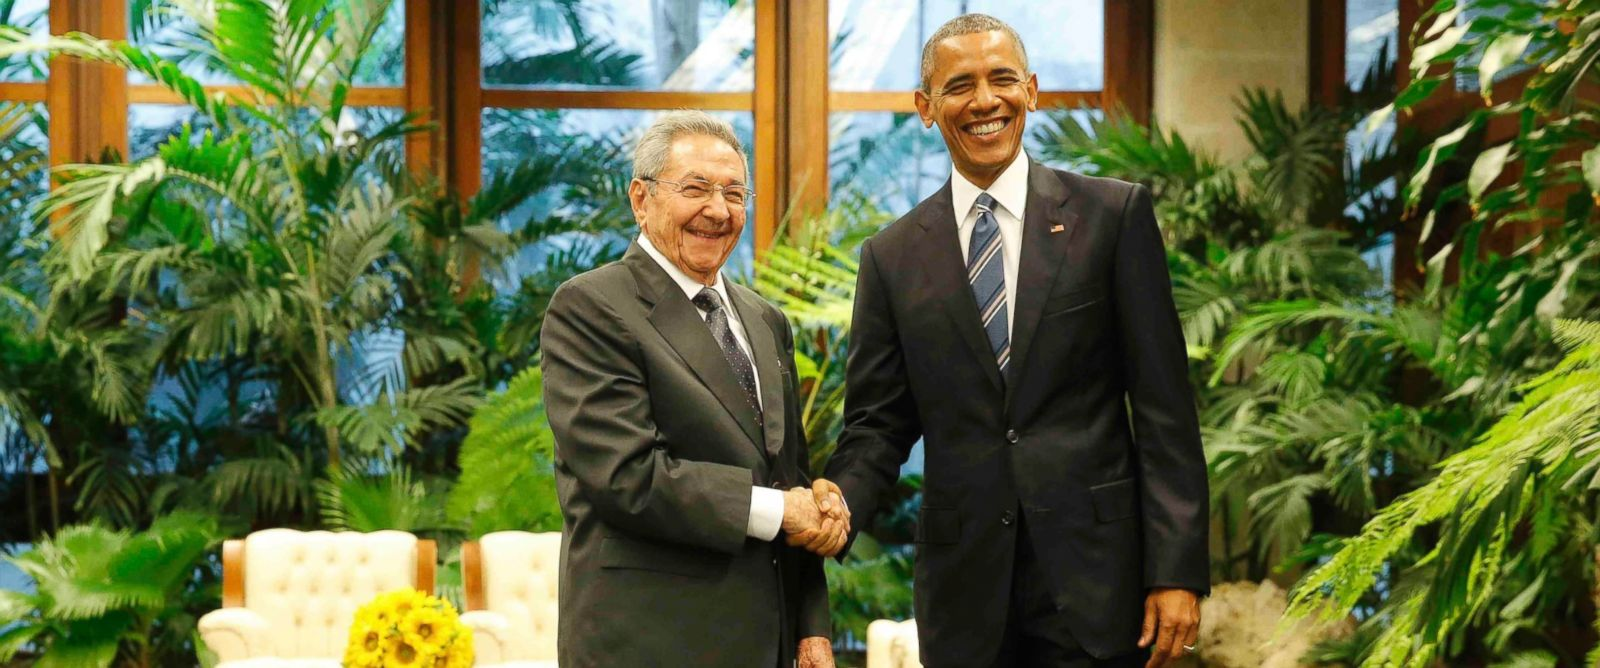 politics obama cuban raul castro